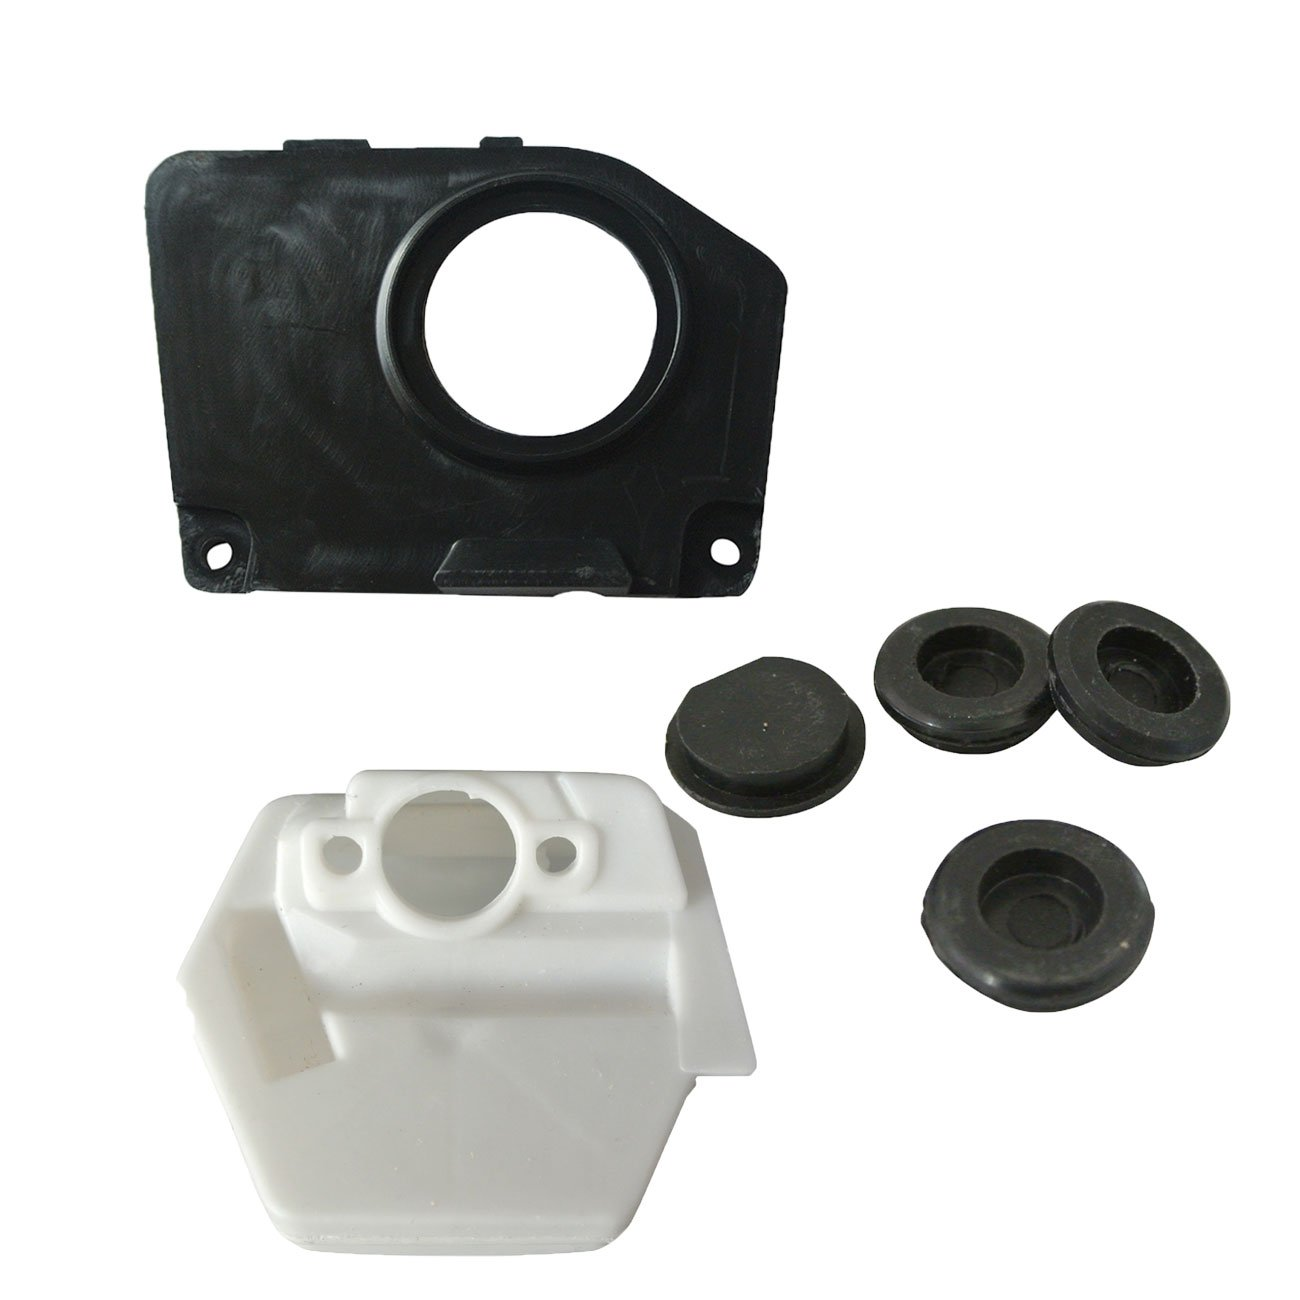 Oil Pump Plastic Pad For Chinese 2500 Gasoline Chainsaw Parts 25cc